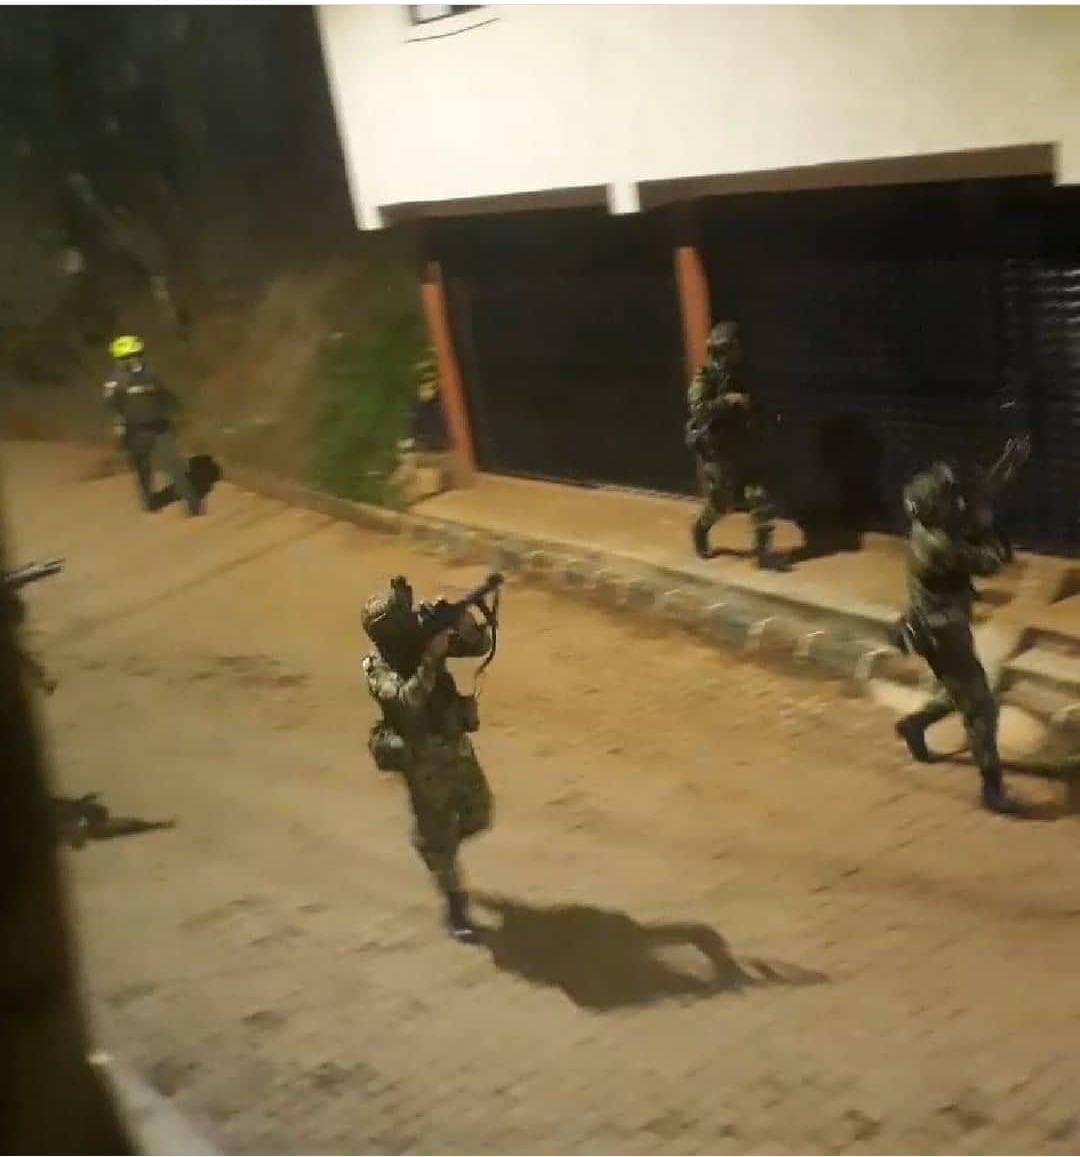 Violent Crackdown On Colombia Protests Leaves At Least 19 Dead (18+, Videos)